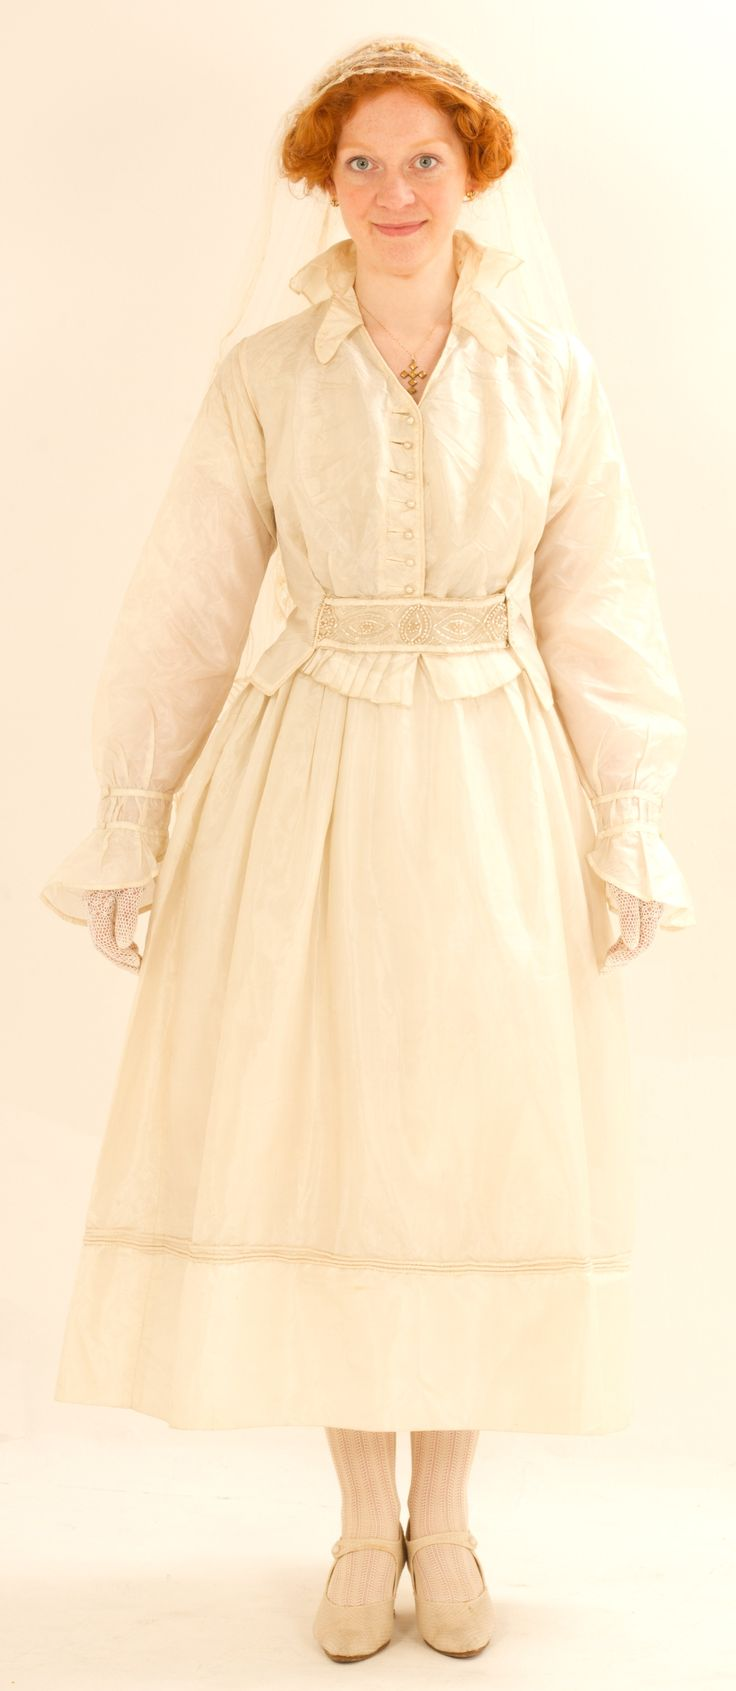 Ww wedding dress c silk taffeta with cording